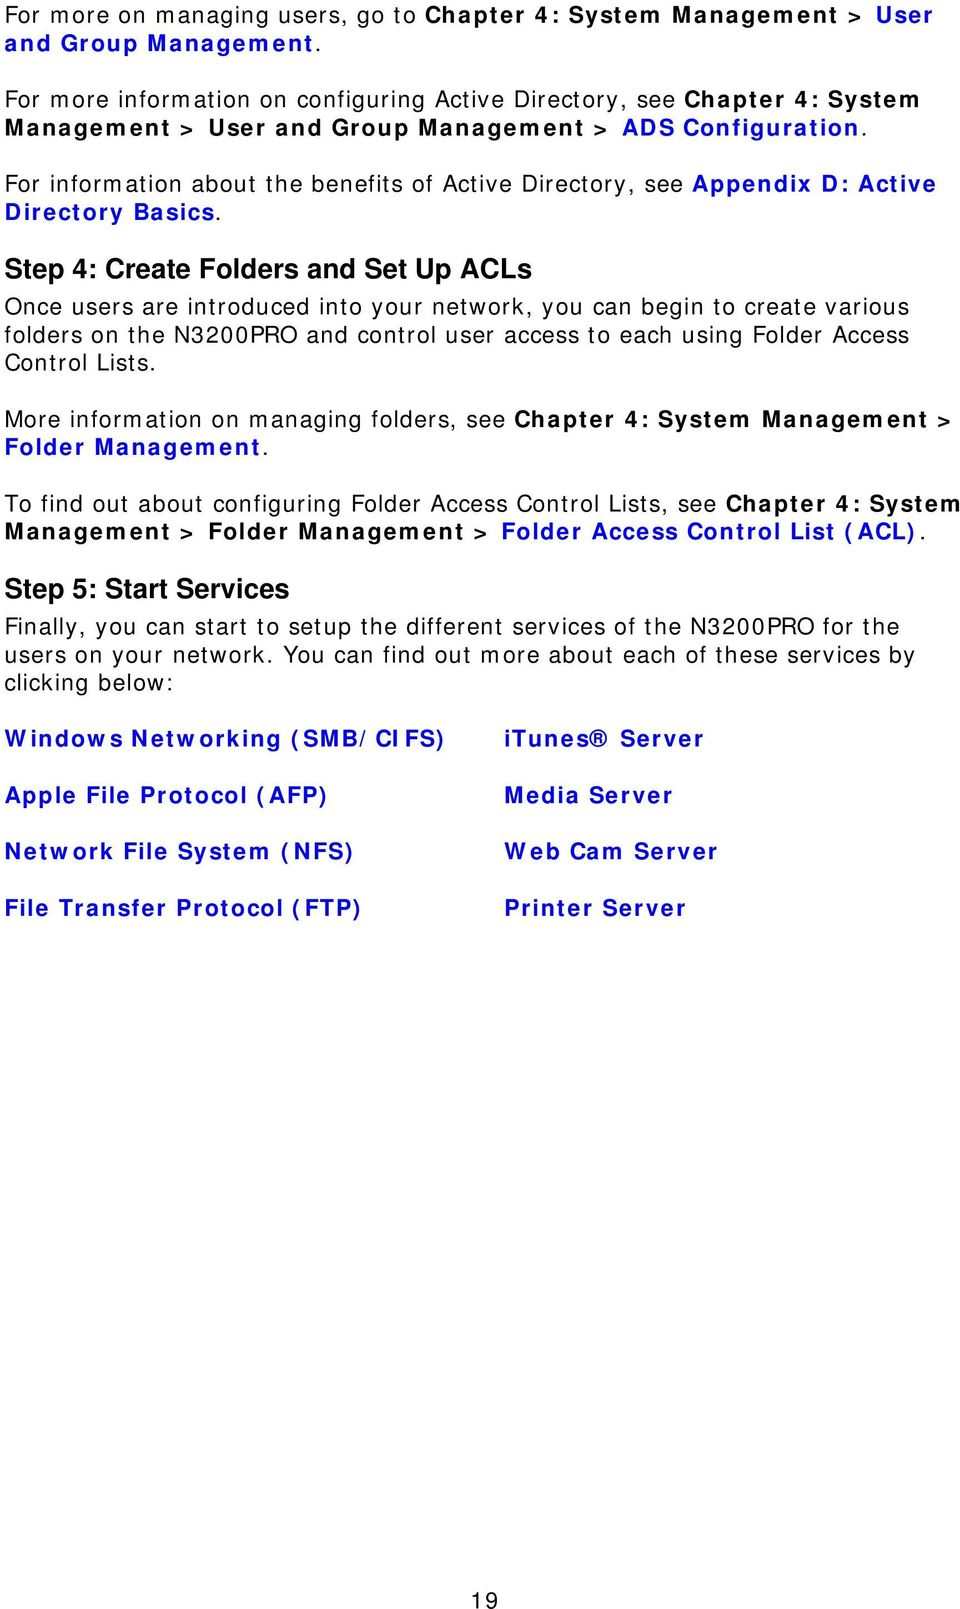 For information about the benefits of Active Directory, see Appendix D: Active Directory Basics.